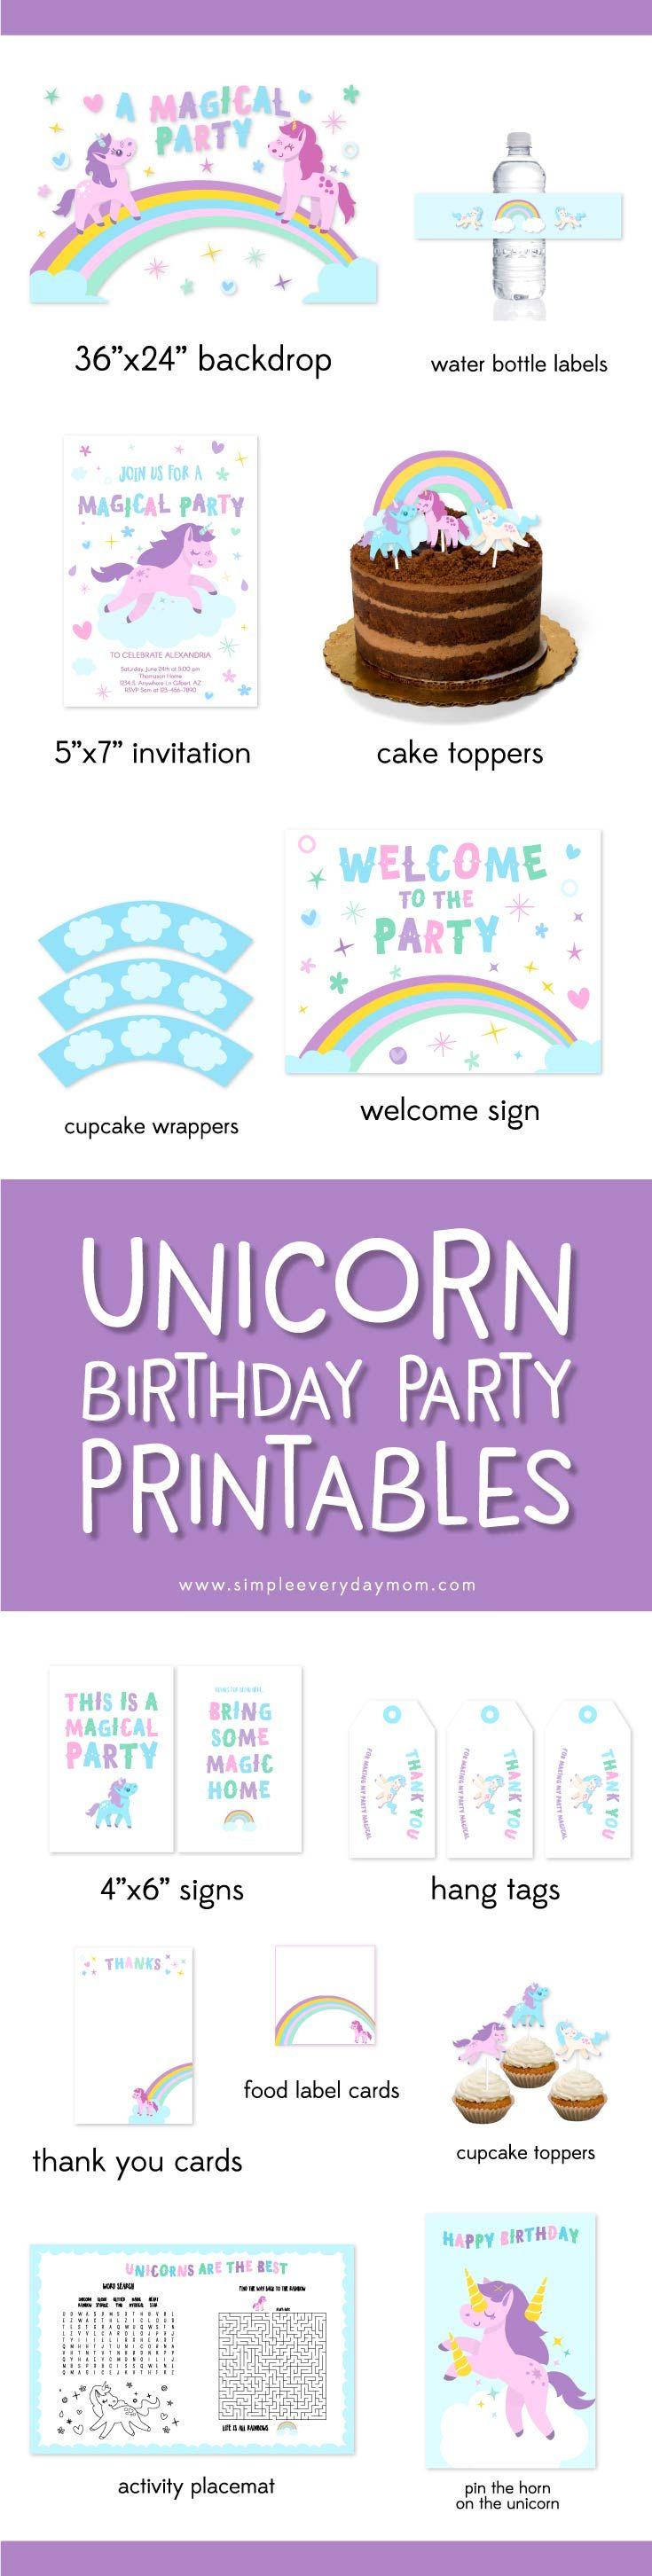 Unicorn Birthday Party Ideas | This printable party package includes everything you need to throw an adorable unicorn party including a dessert table backdrop, water bottle labels, an editable invitation, cake toppers, cupcake toppers, cupcake wrappers, a welcome sign, table signs, party favor tags, thank you cards, food label cards, an activity placemat and pin the horn on the unicorn.  #UnicornParty #kidsparty #girly